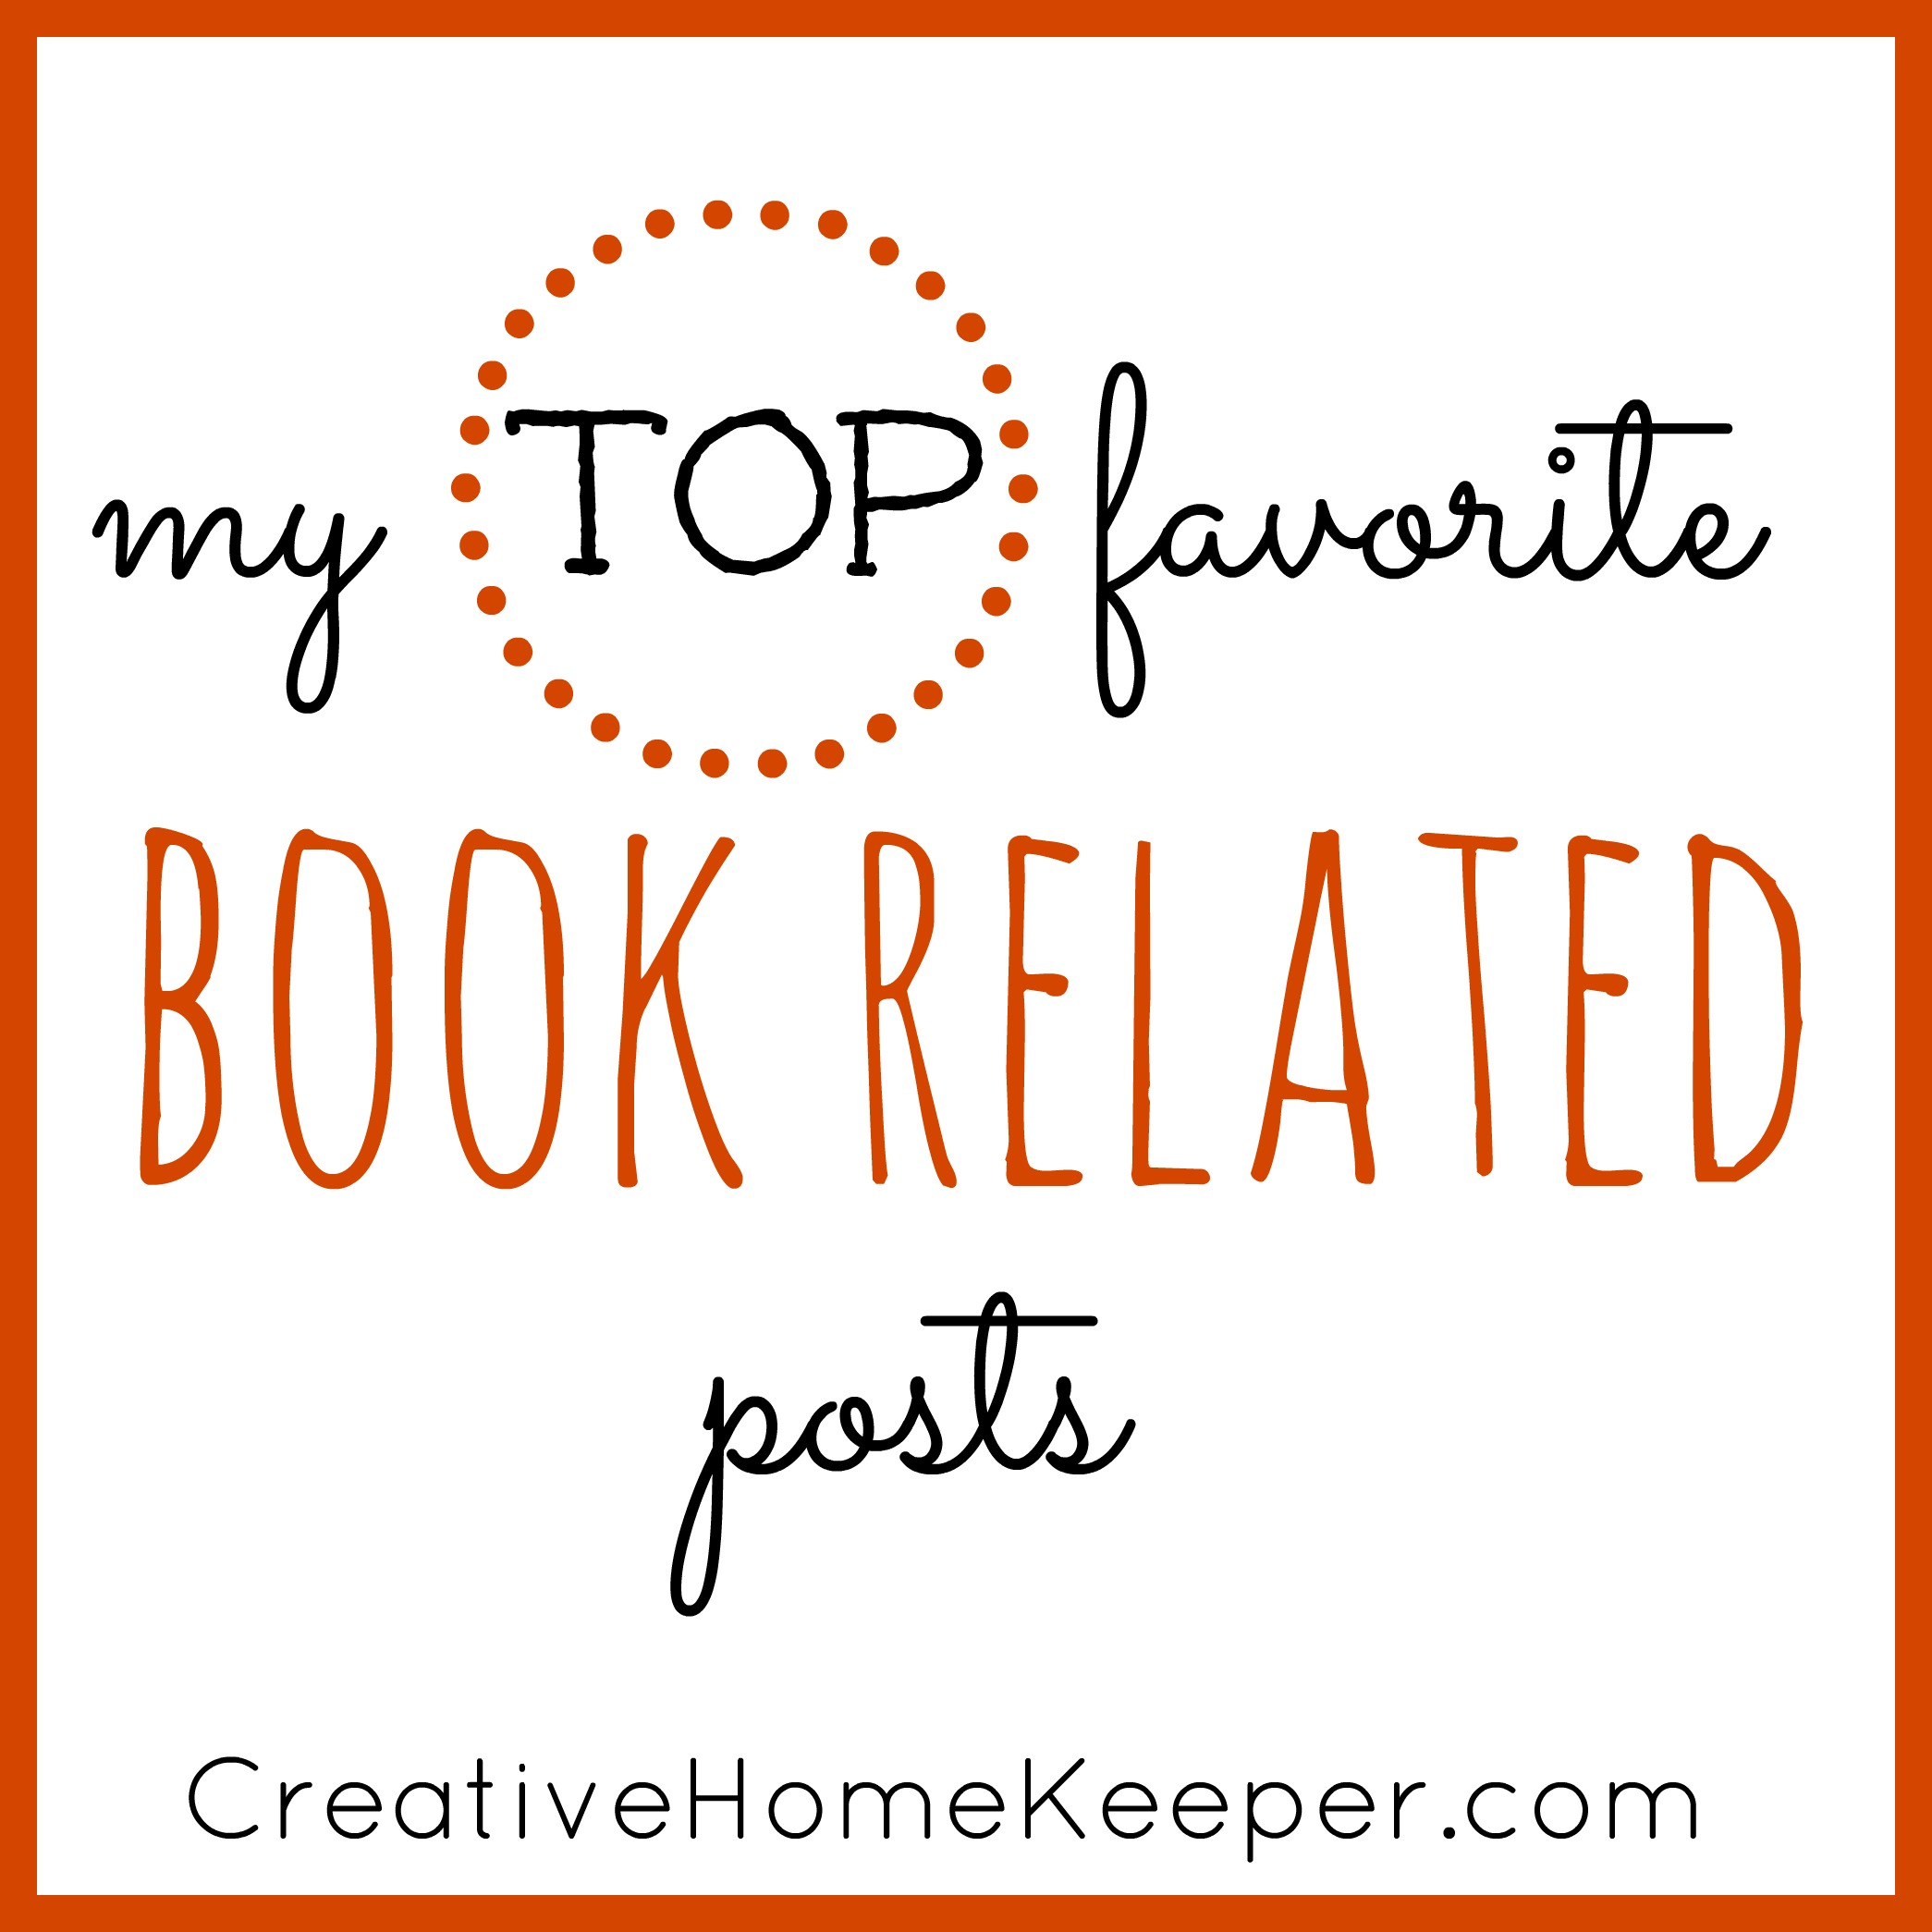 My Top Favorite Book Related Posts